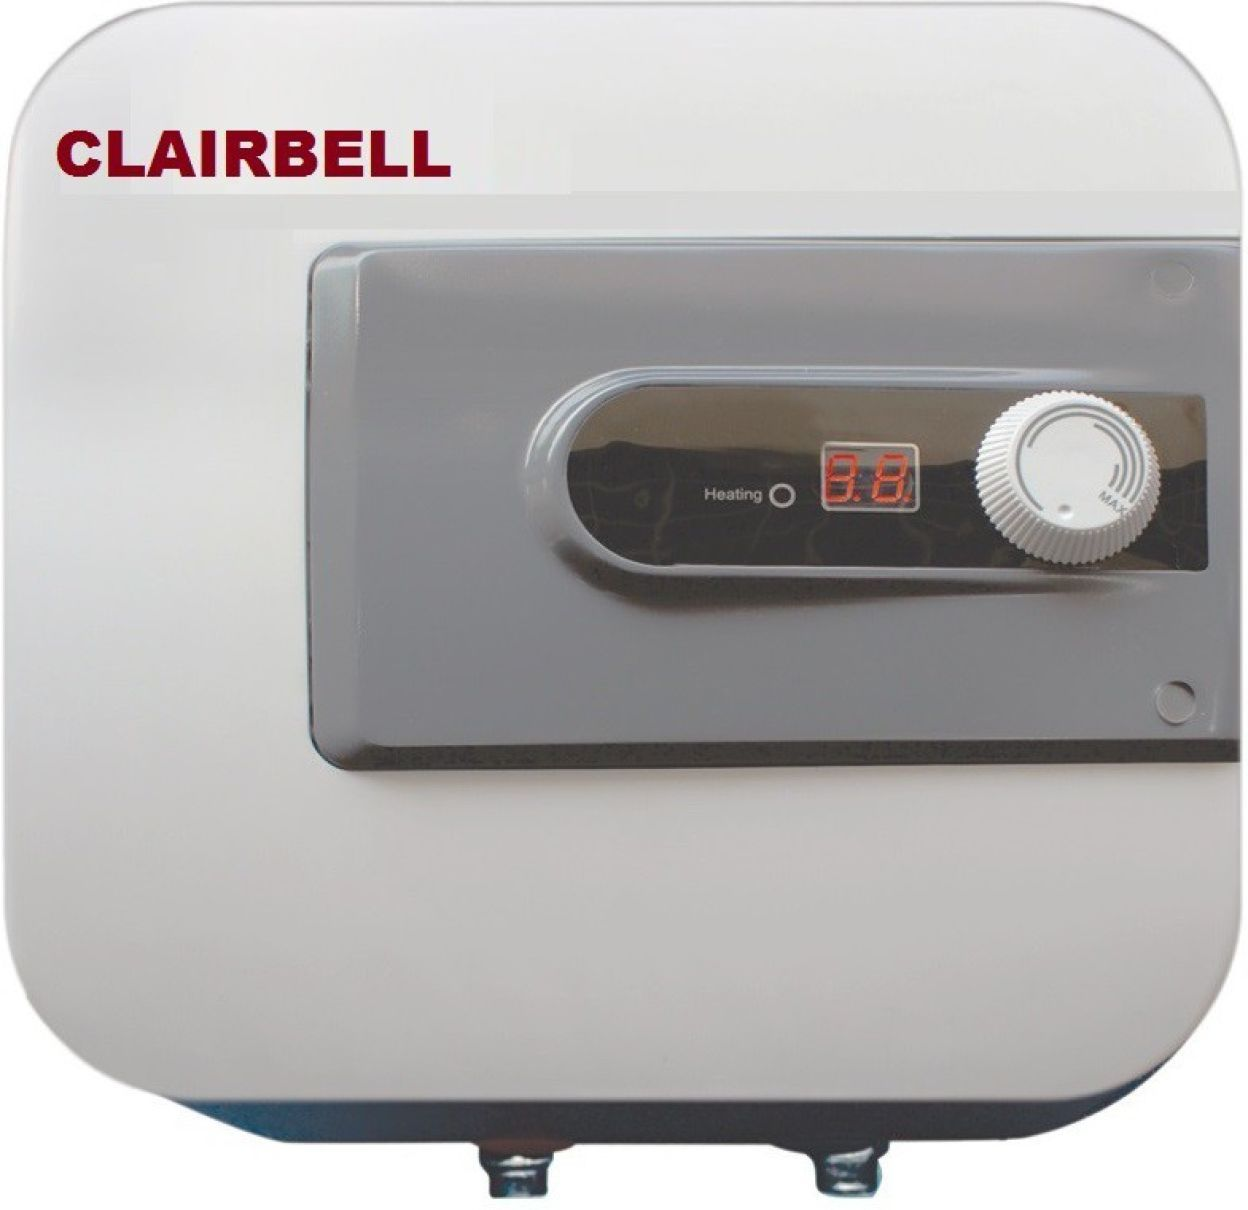 Hindware Atlantic Ondeo Pure 25l Storage Water Geyser Ao Smith Hse Sas 10 Electric Heater Clairbell Royal Pearl Digital 10l Horizontal